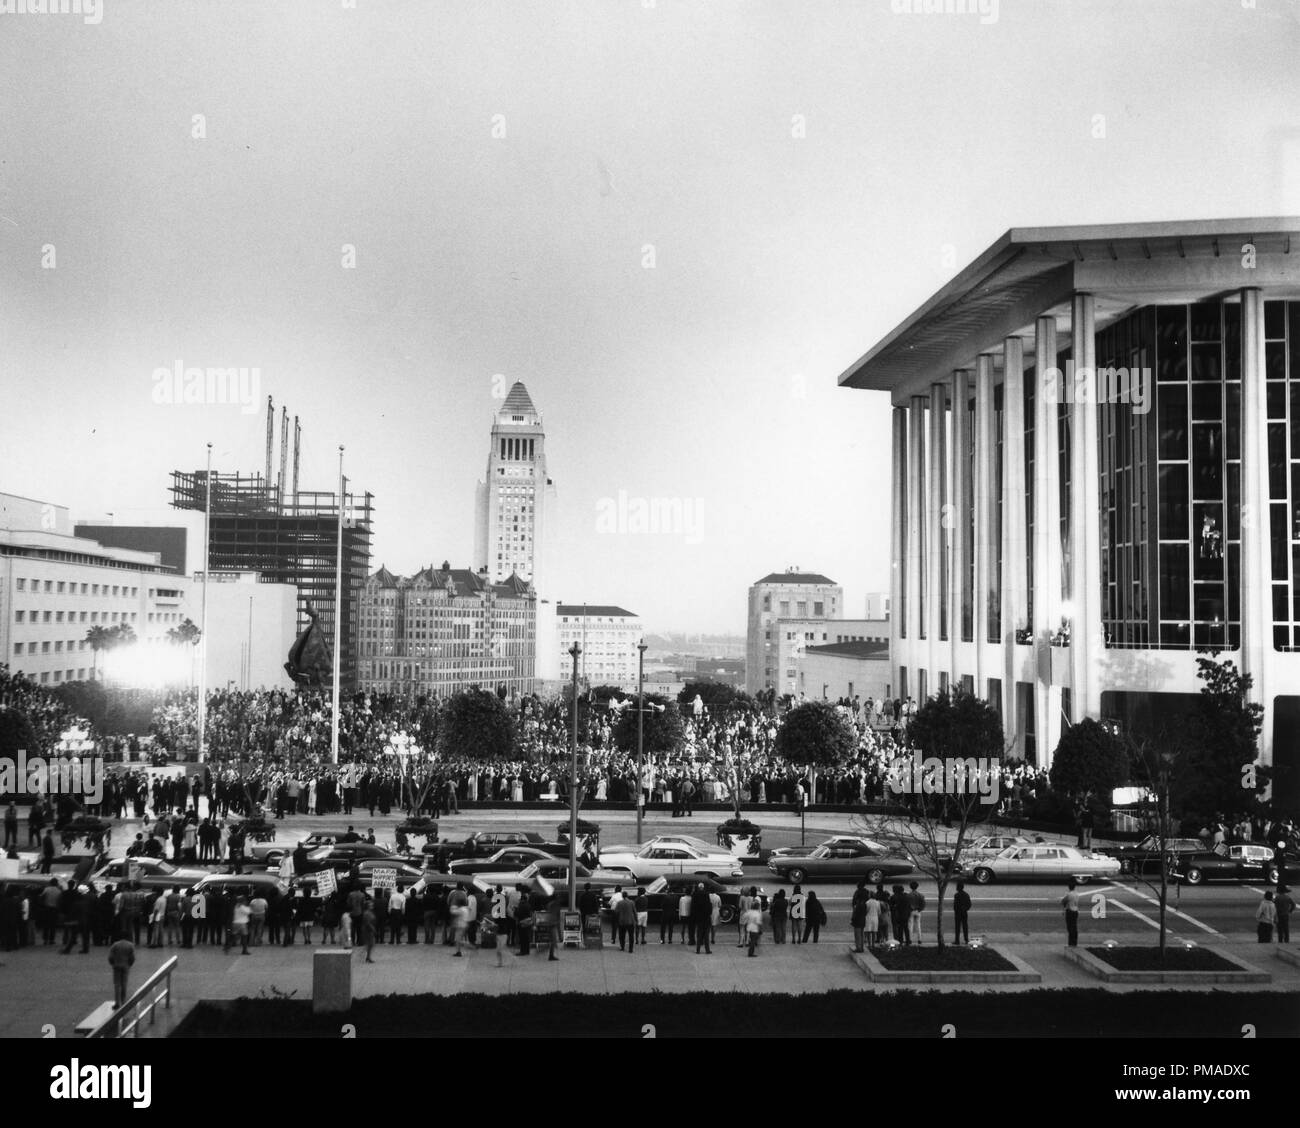 The 42nd Annual Academy Awards, 1970  File Reference # 32509_415THA - Stock Image